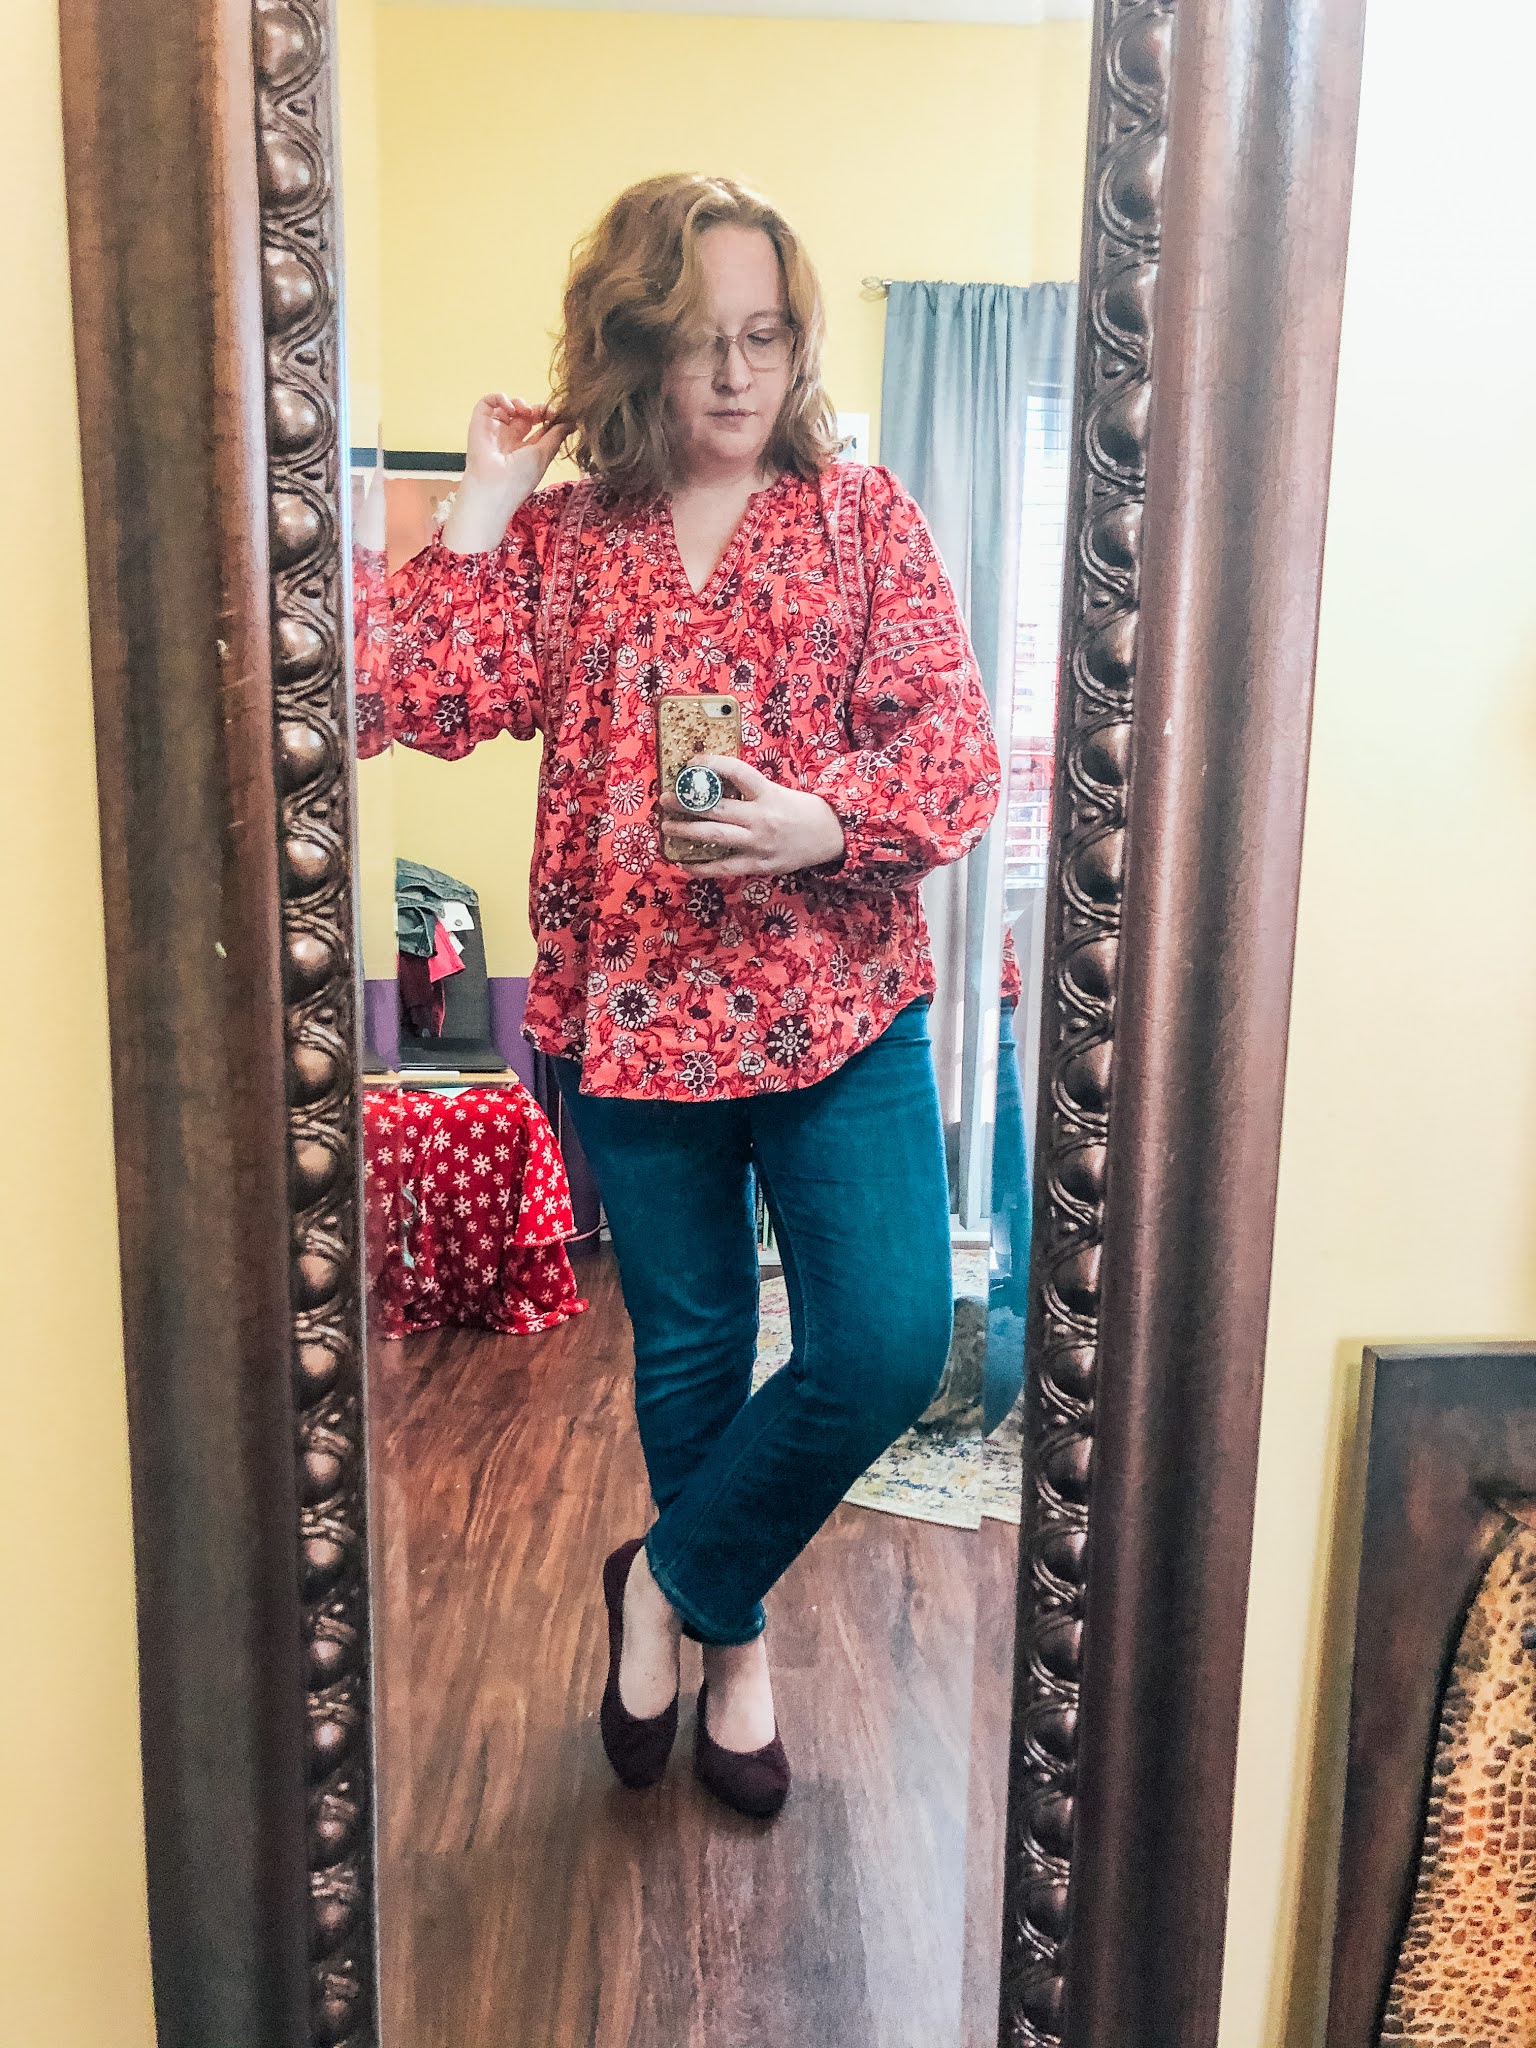 oversized-red-floral-blouse-button-fly-jeans-ballet-flats